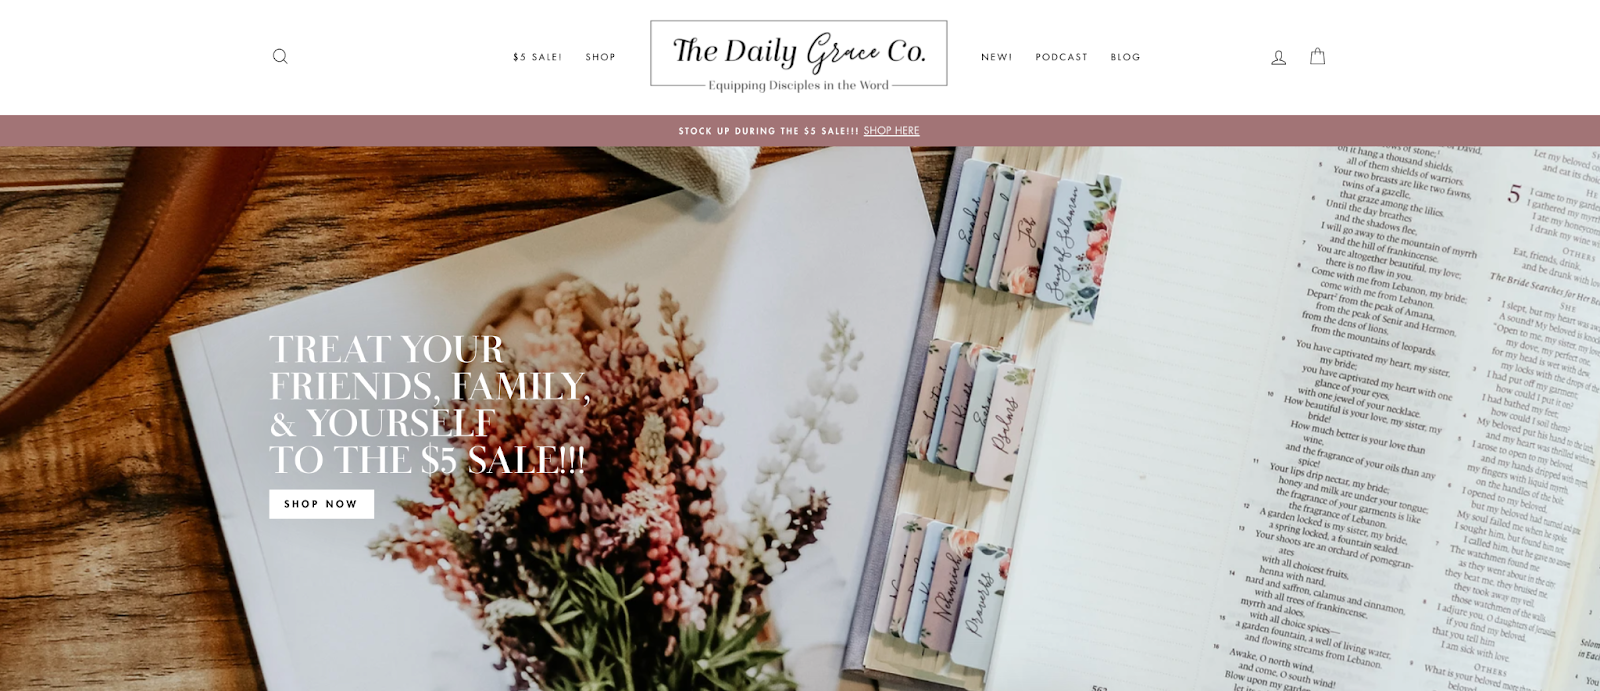 The Daily Grace Co website image for $5 sale